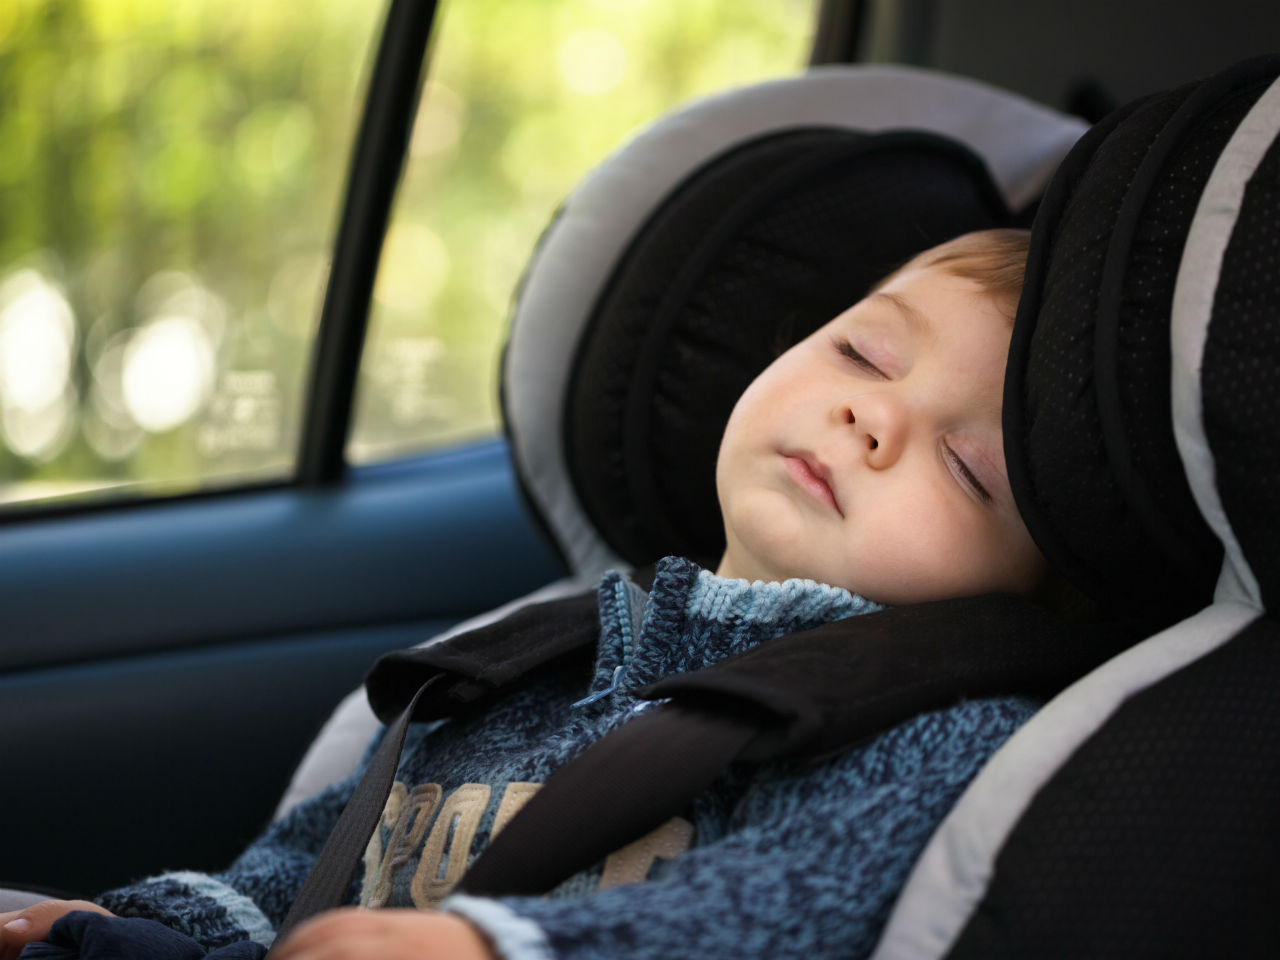 There's a decent chance your kid's car seat is installed wrong